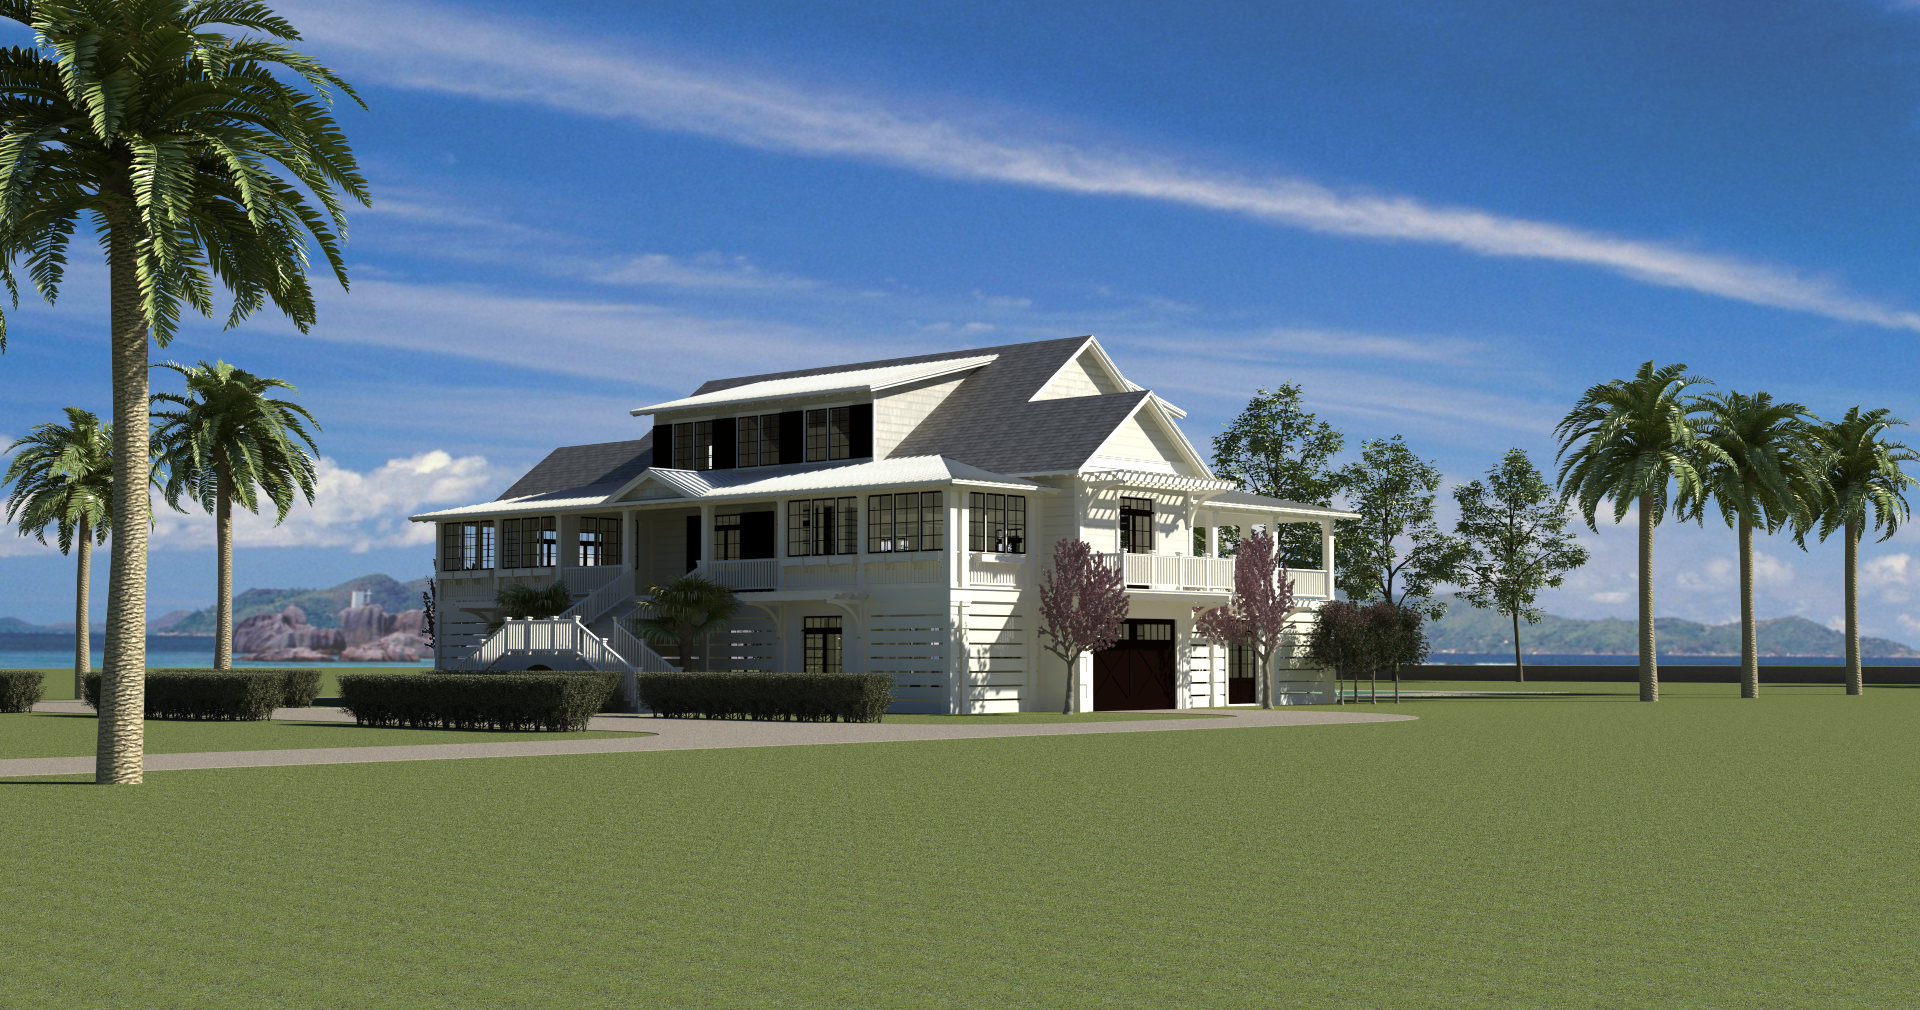 House designed by Shue Design Associates - view from northwest showing front and west facades.  For more, visit www,shueda.com #homes #design